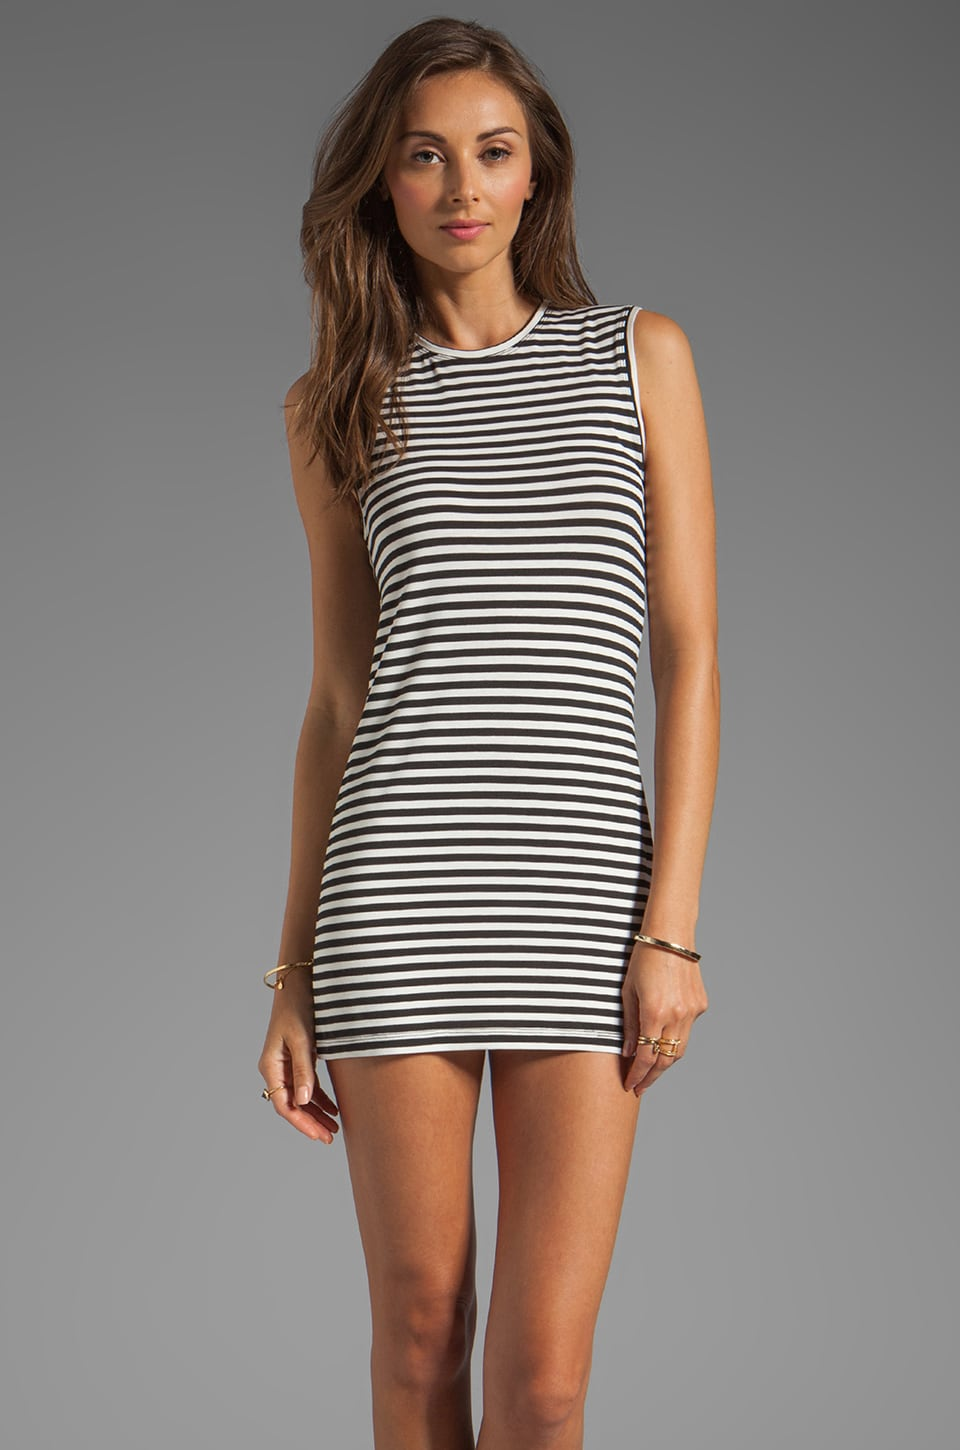 BEC&BRIDGE Marinero Tank Dress in Stripe